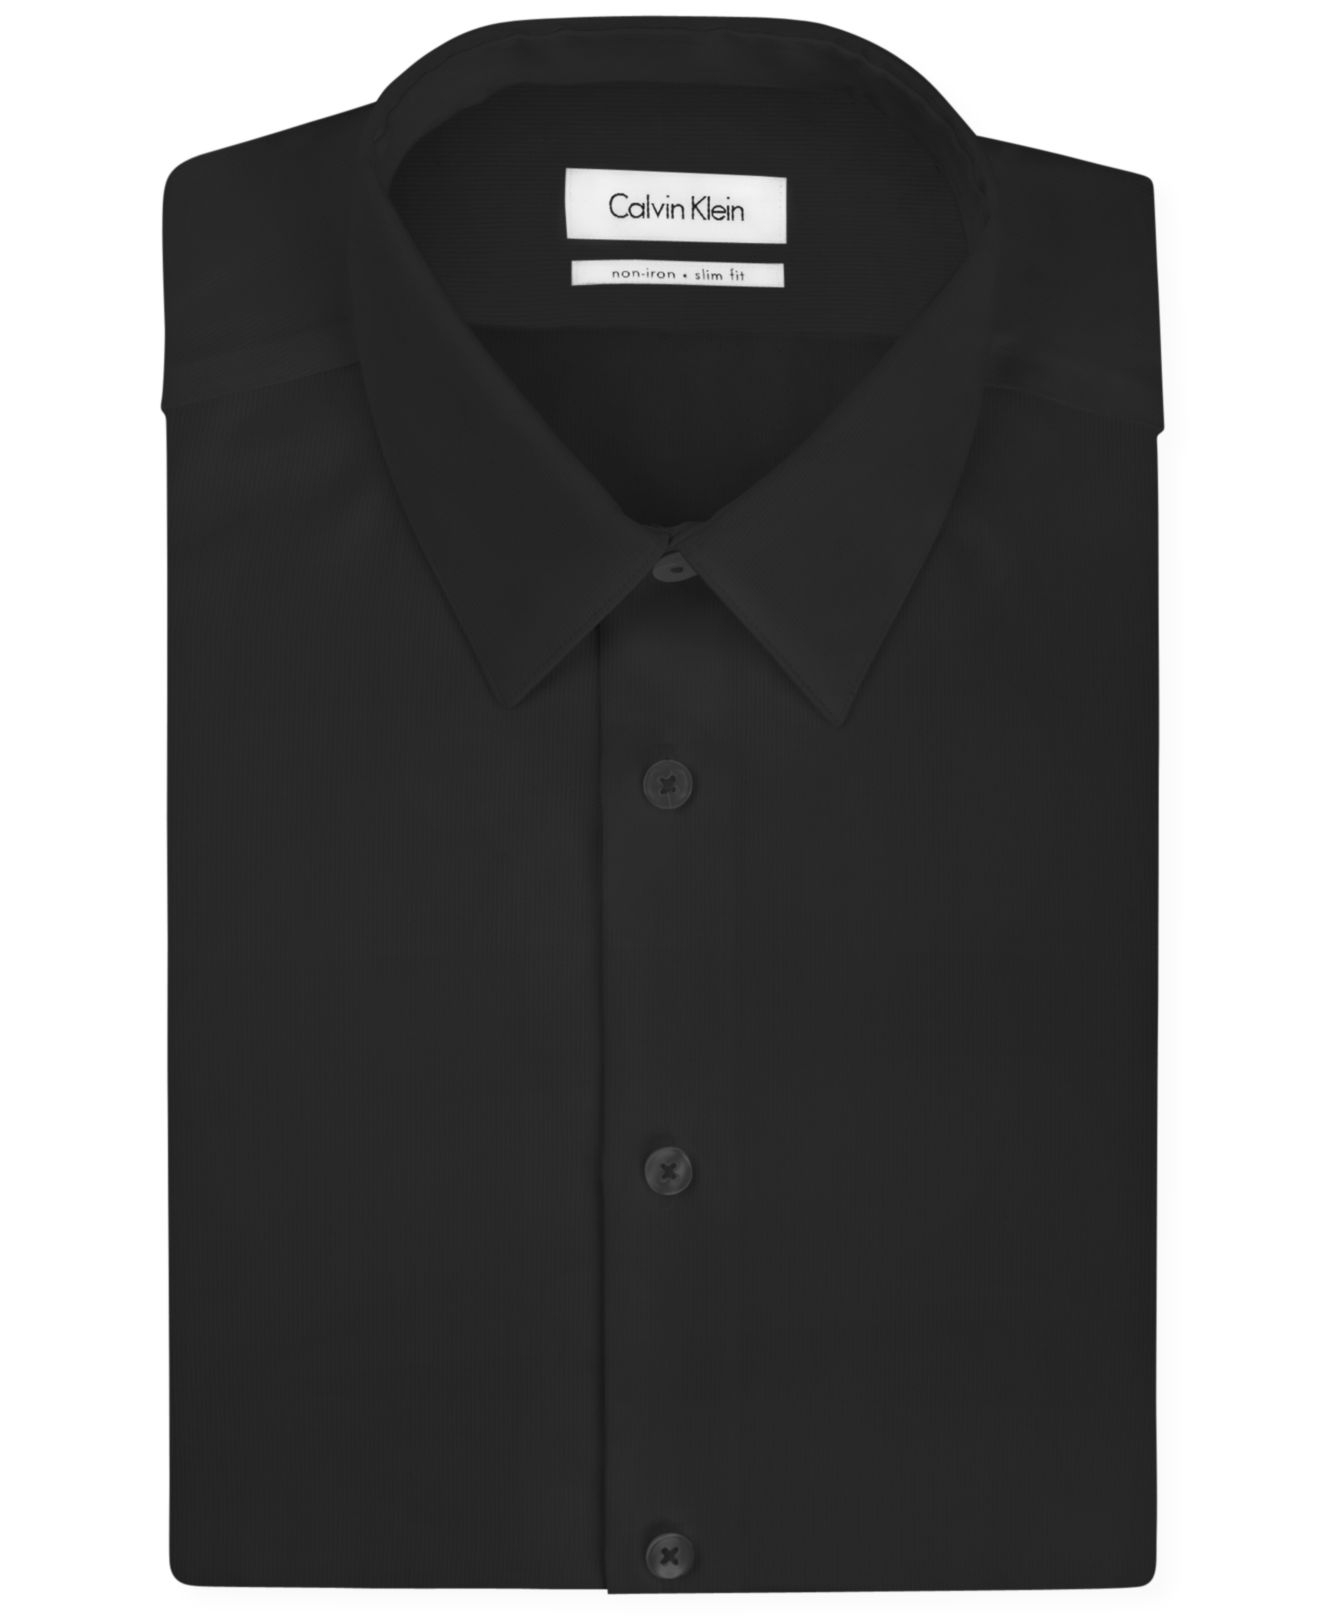 Calvin klein steel slim fit non iron textured solid dress for Slim fit non iron shirts